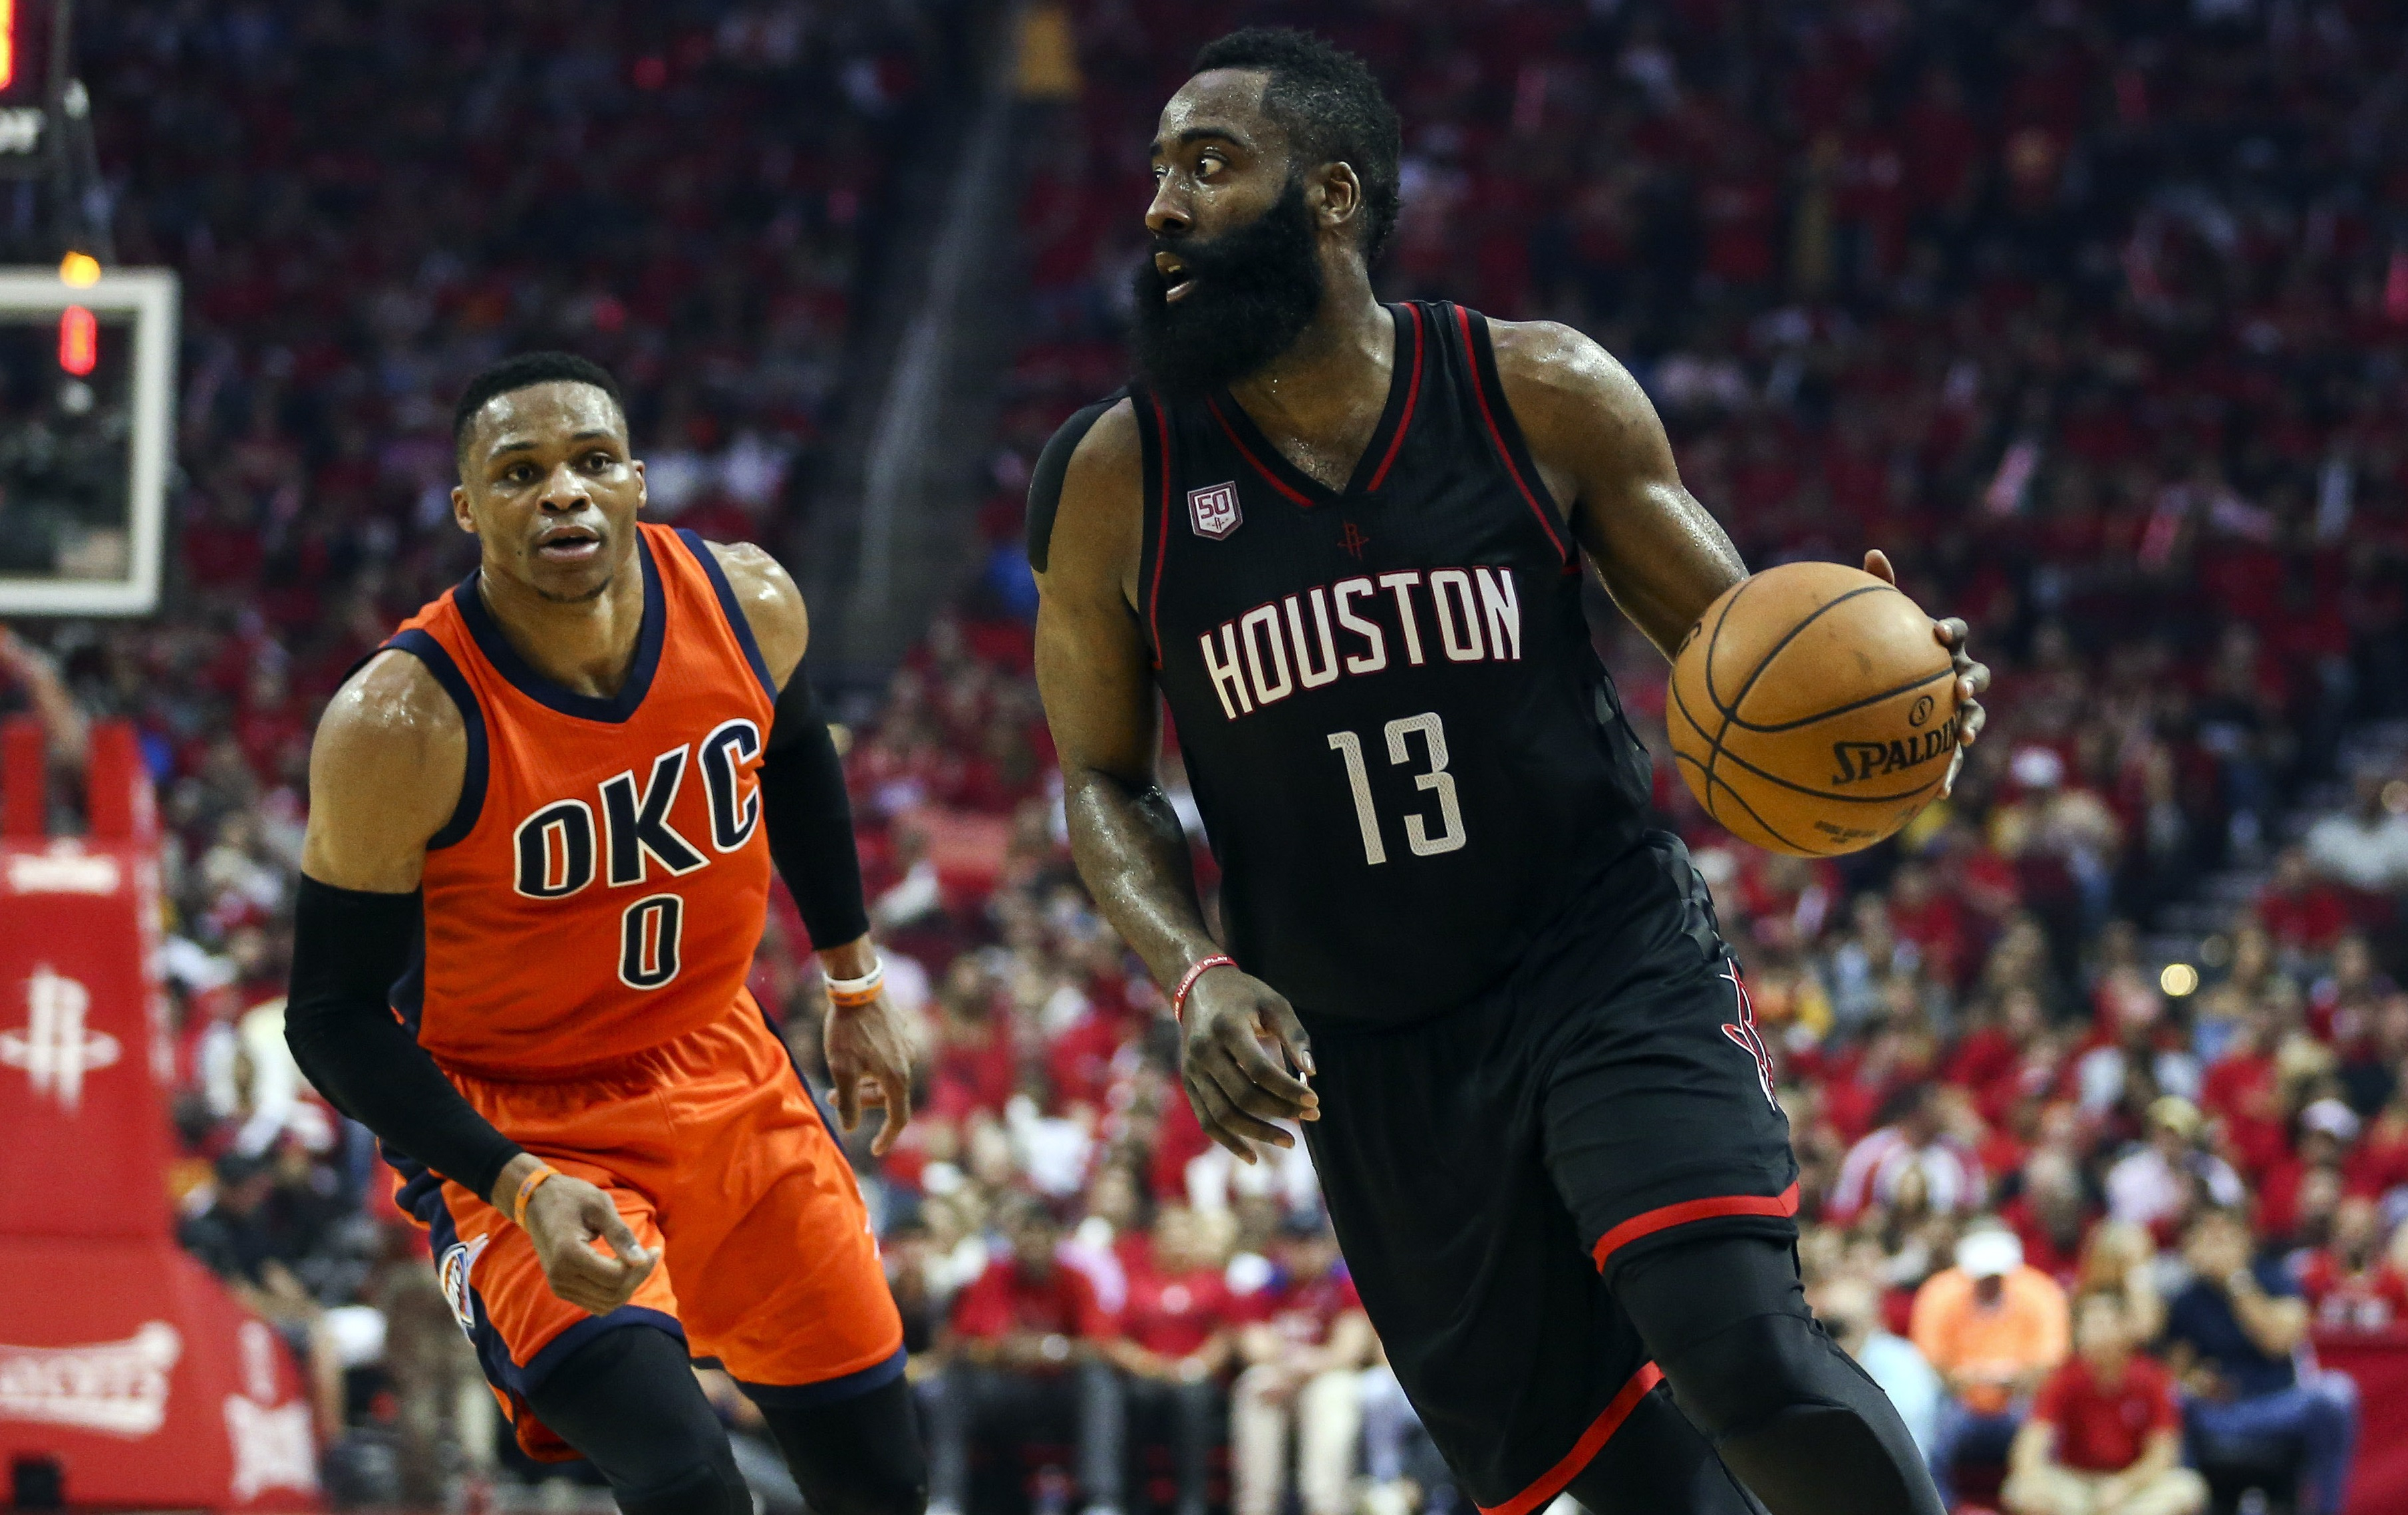 Apr 16, 2017; Houston, TX, USA; Houston Rockets guard James Harden (13) dribbles the ball during the third quarter as Oklahoma City Thunder guard Russell Westbrook (0) defends in game one of the first round of the 2017 NBA Playoffs at Toyota Center. Mandatory Credit: Troy Taormina-USA TODAY Sports